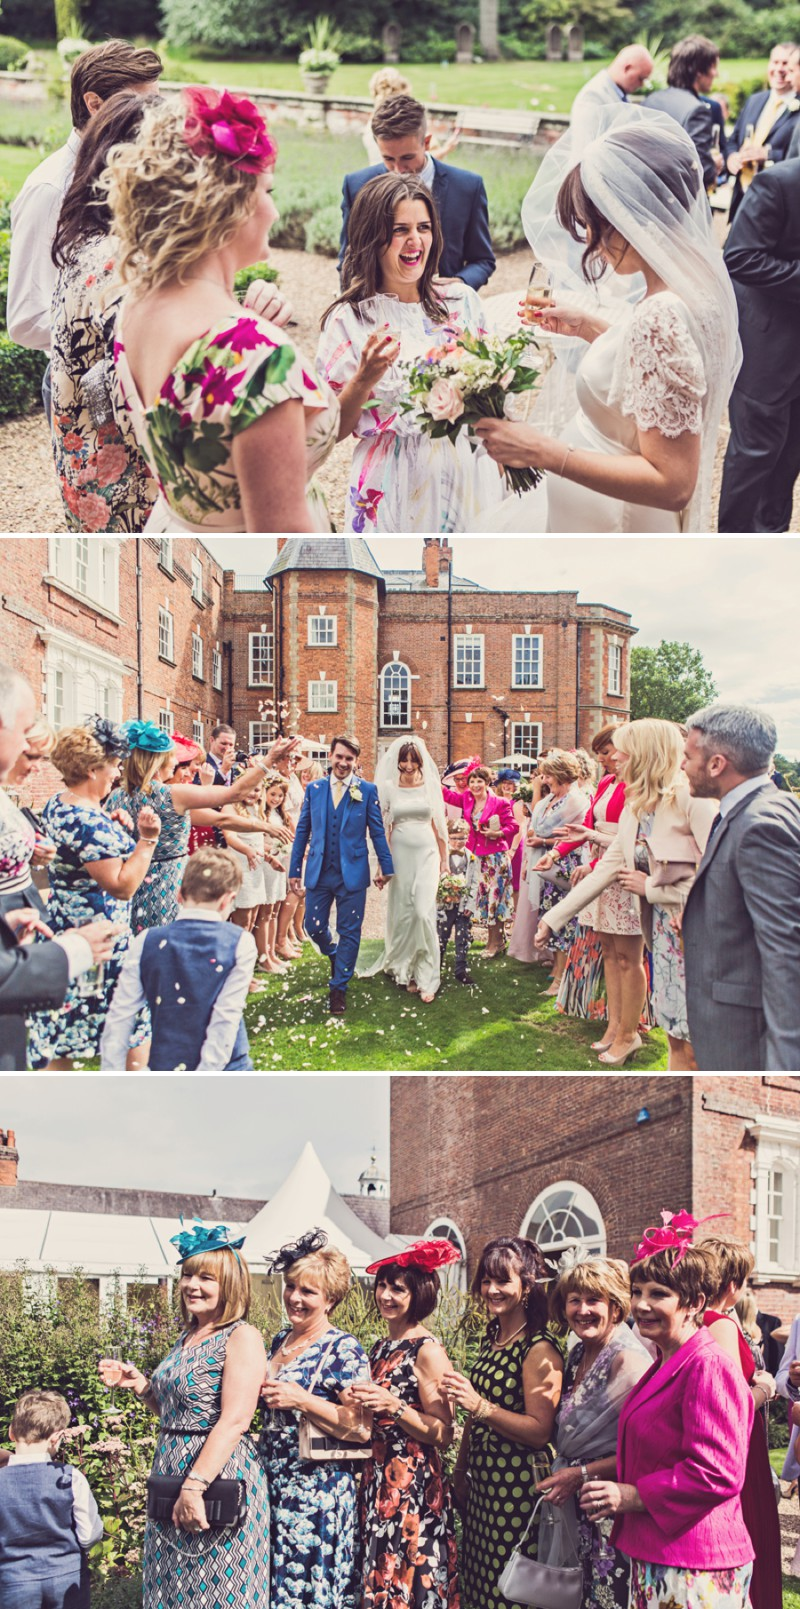 ecb5753e1750 ... A 1960s Country Garden Inspired Wedding At Iscoyd Park With A Charlie  Brear Wedding Dress And ...